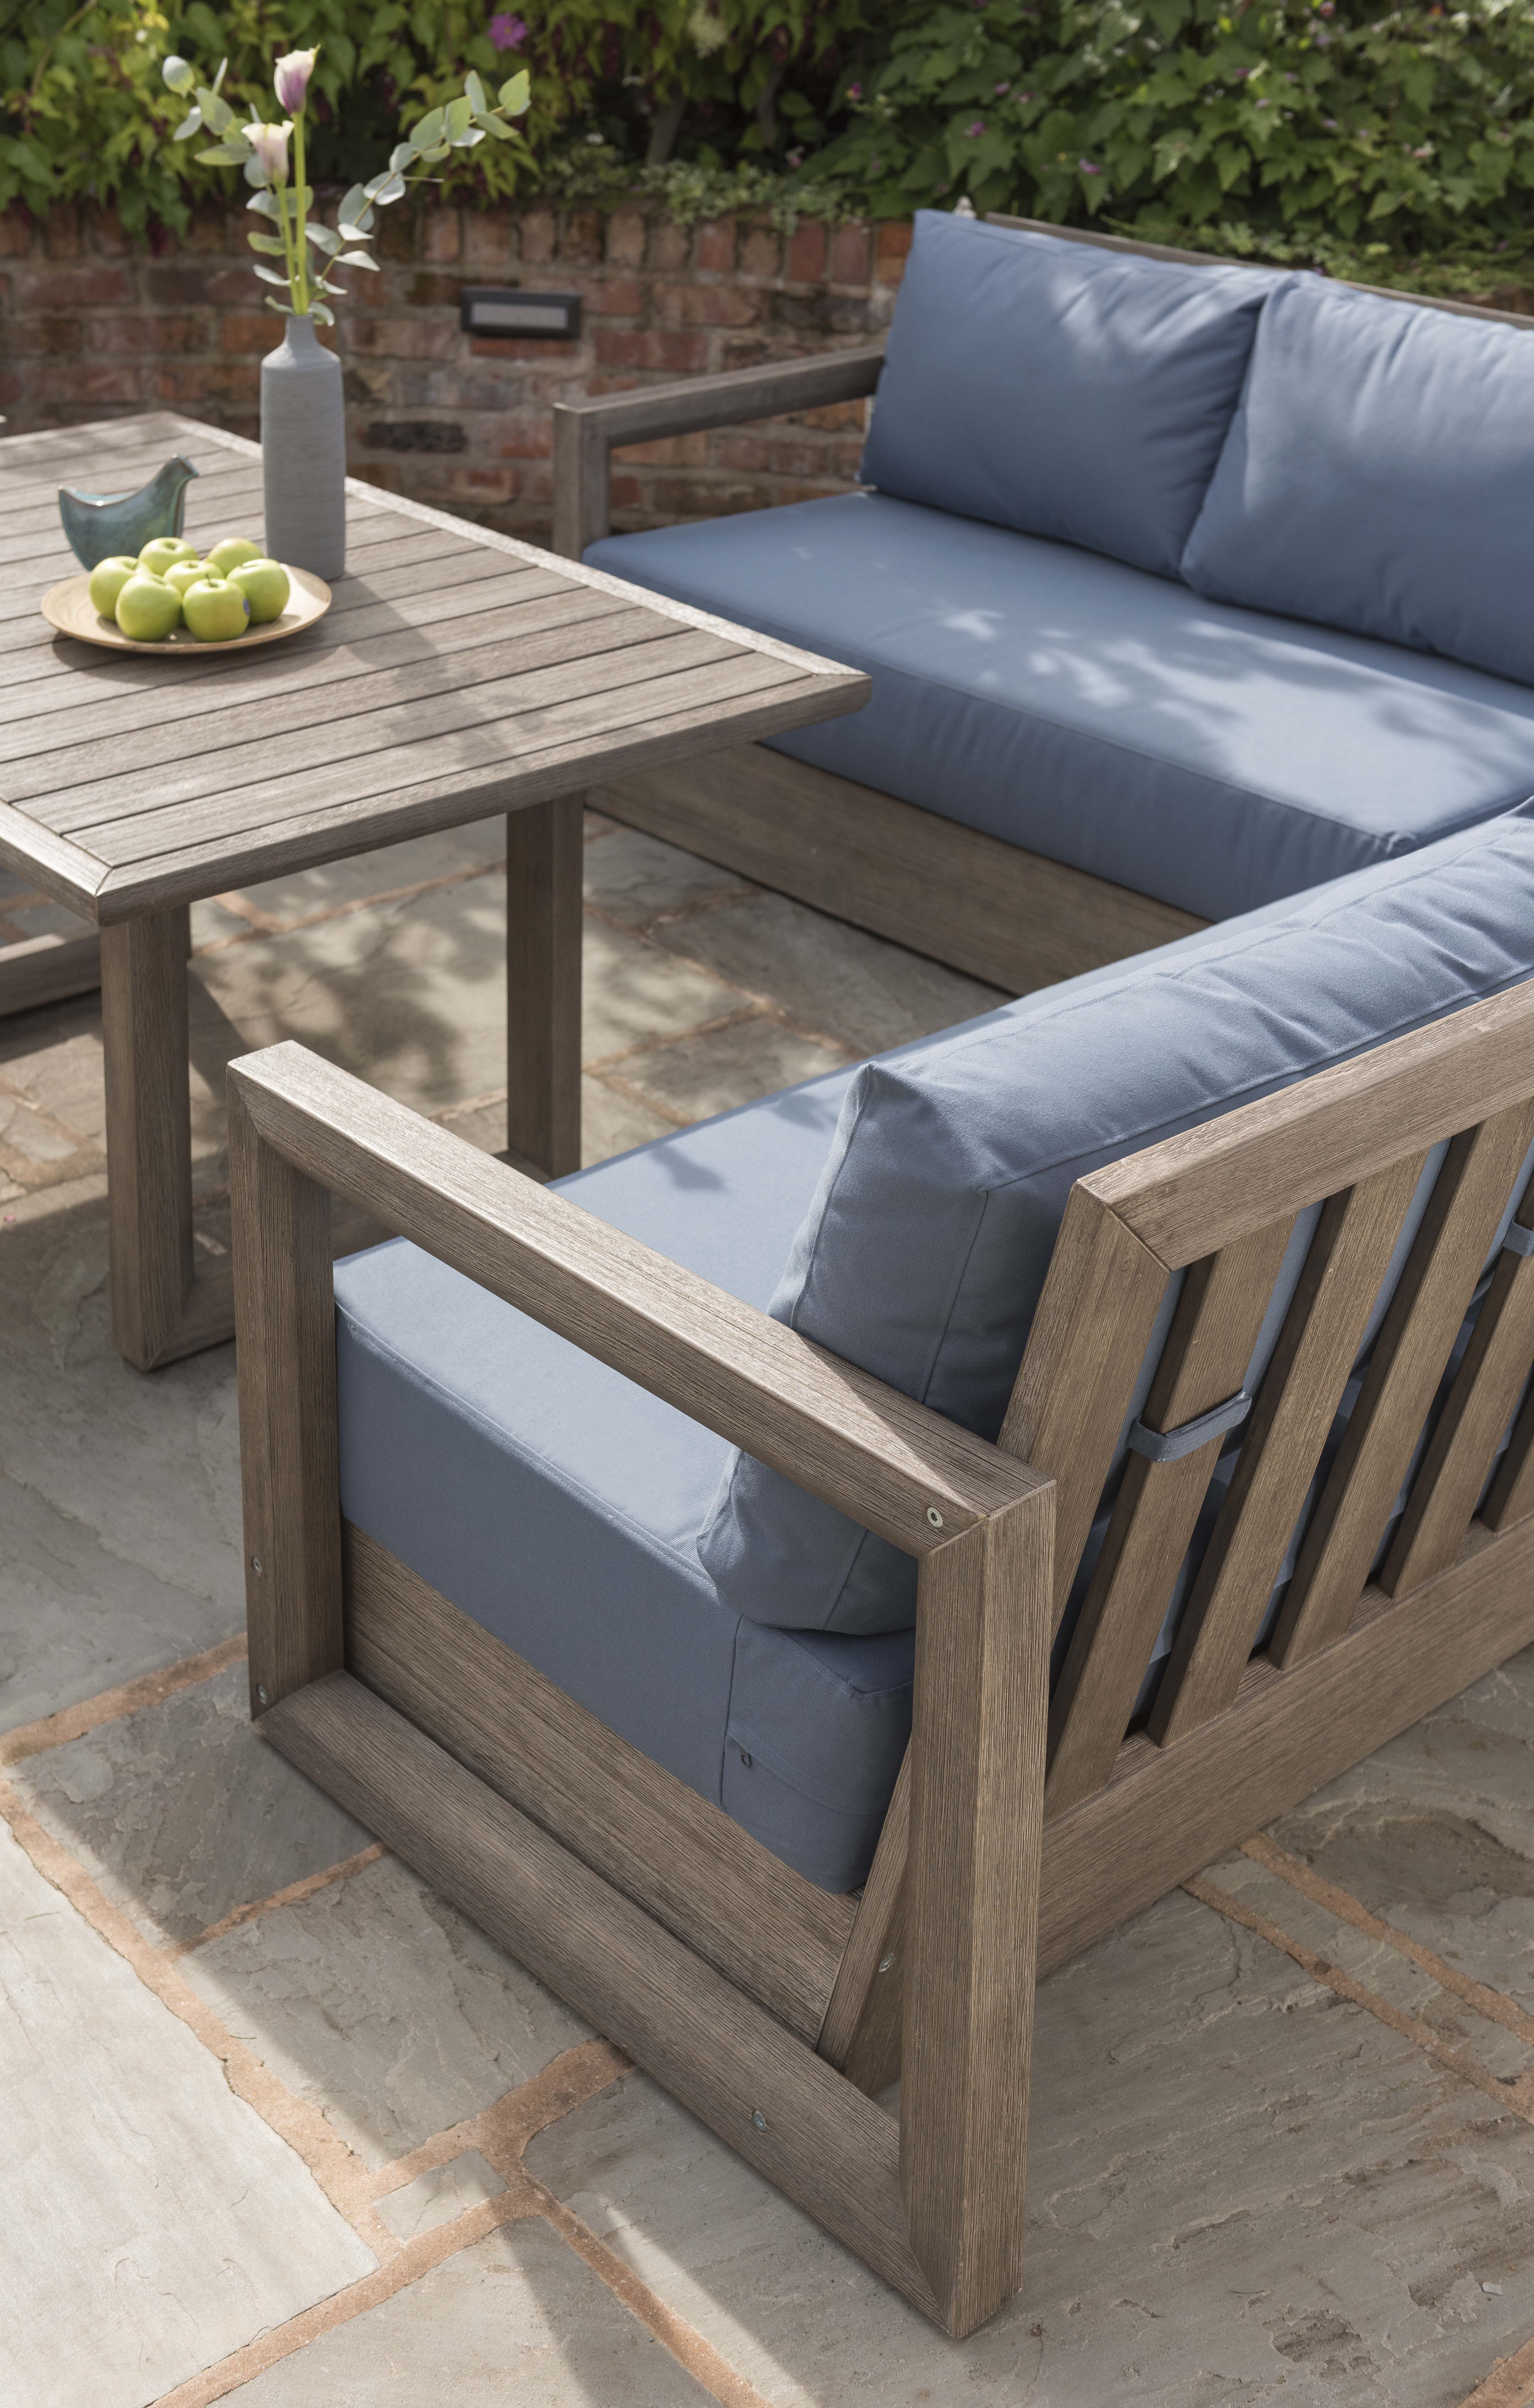 Wood garden furniture is now in the casual dining range take a look at our ezra outdoor sets